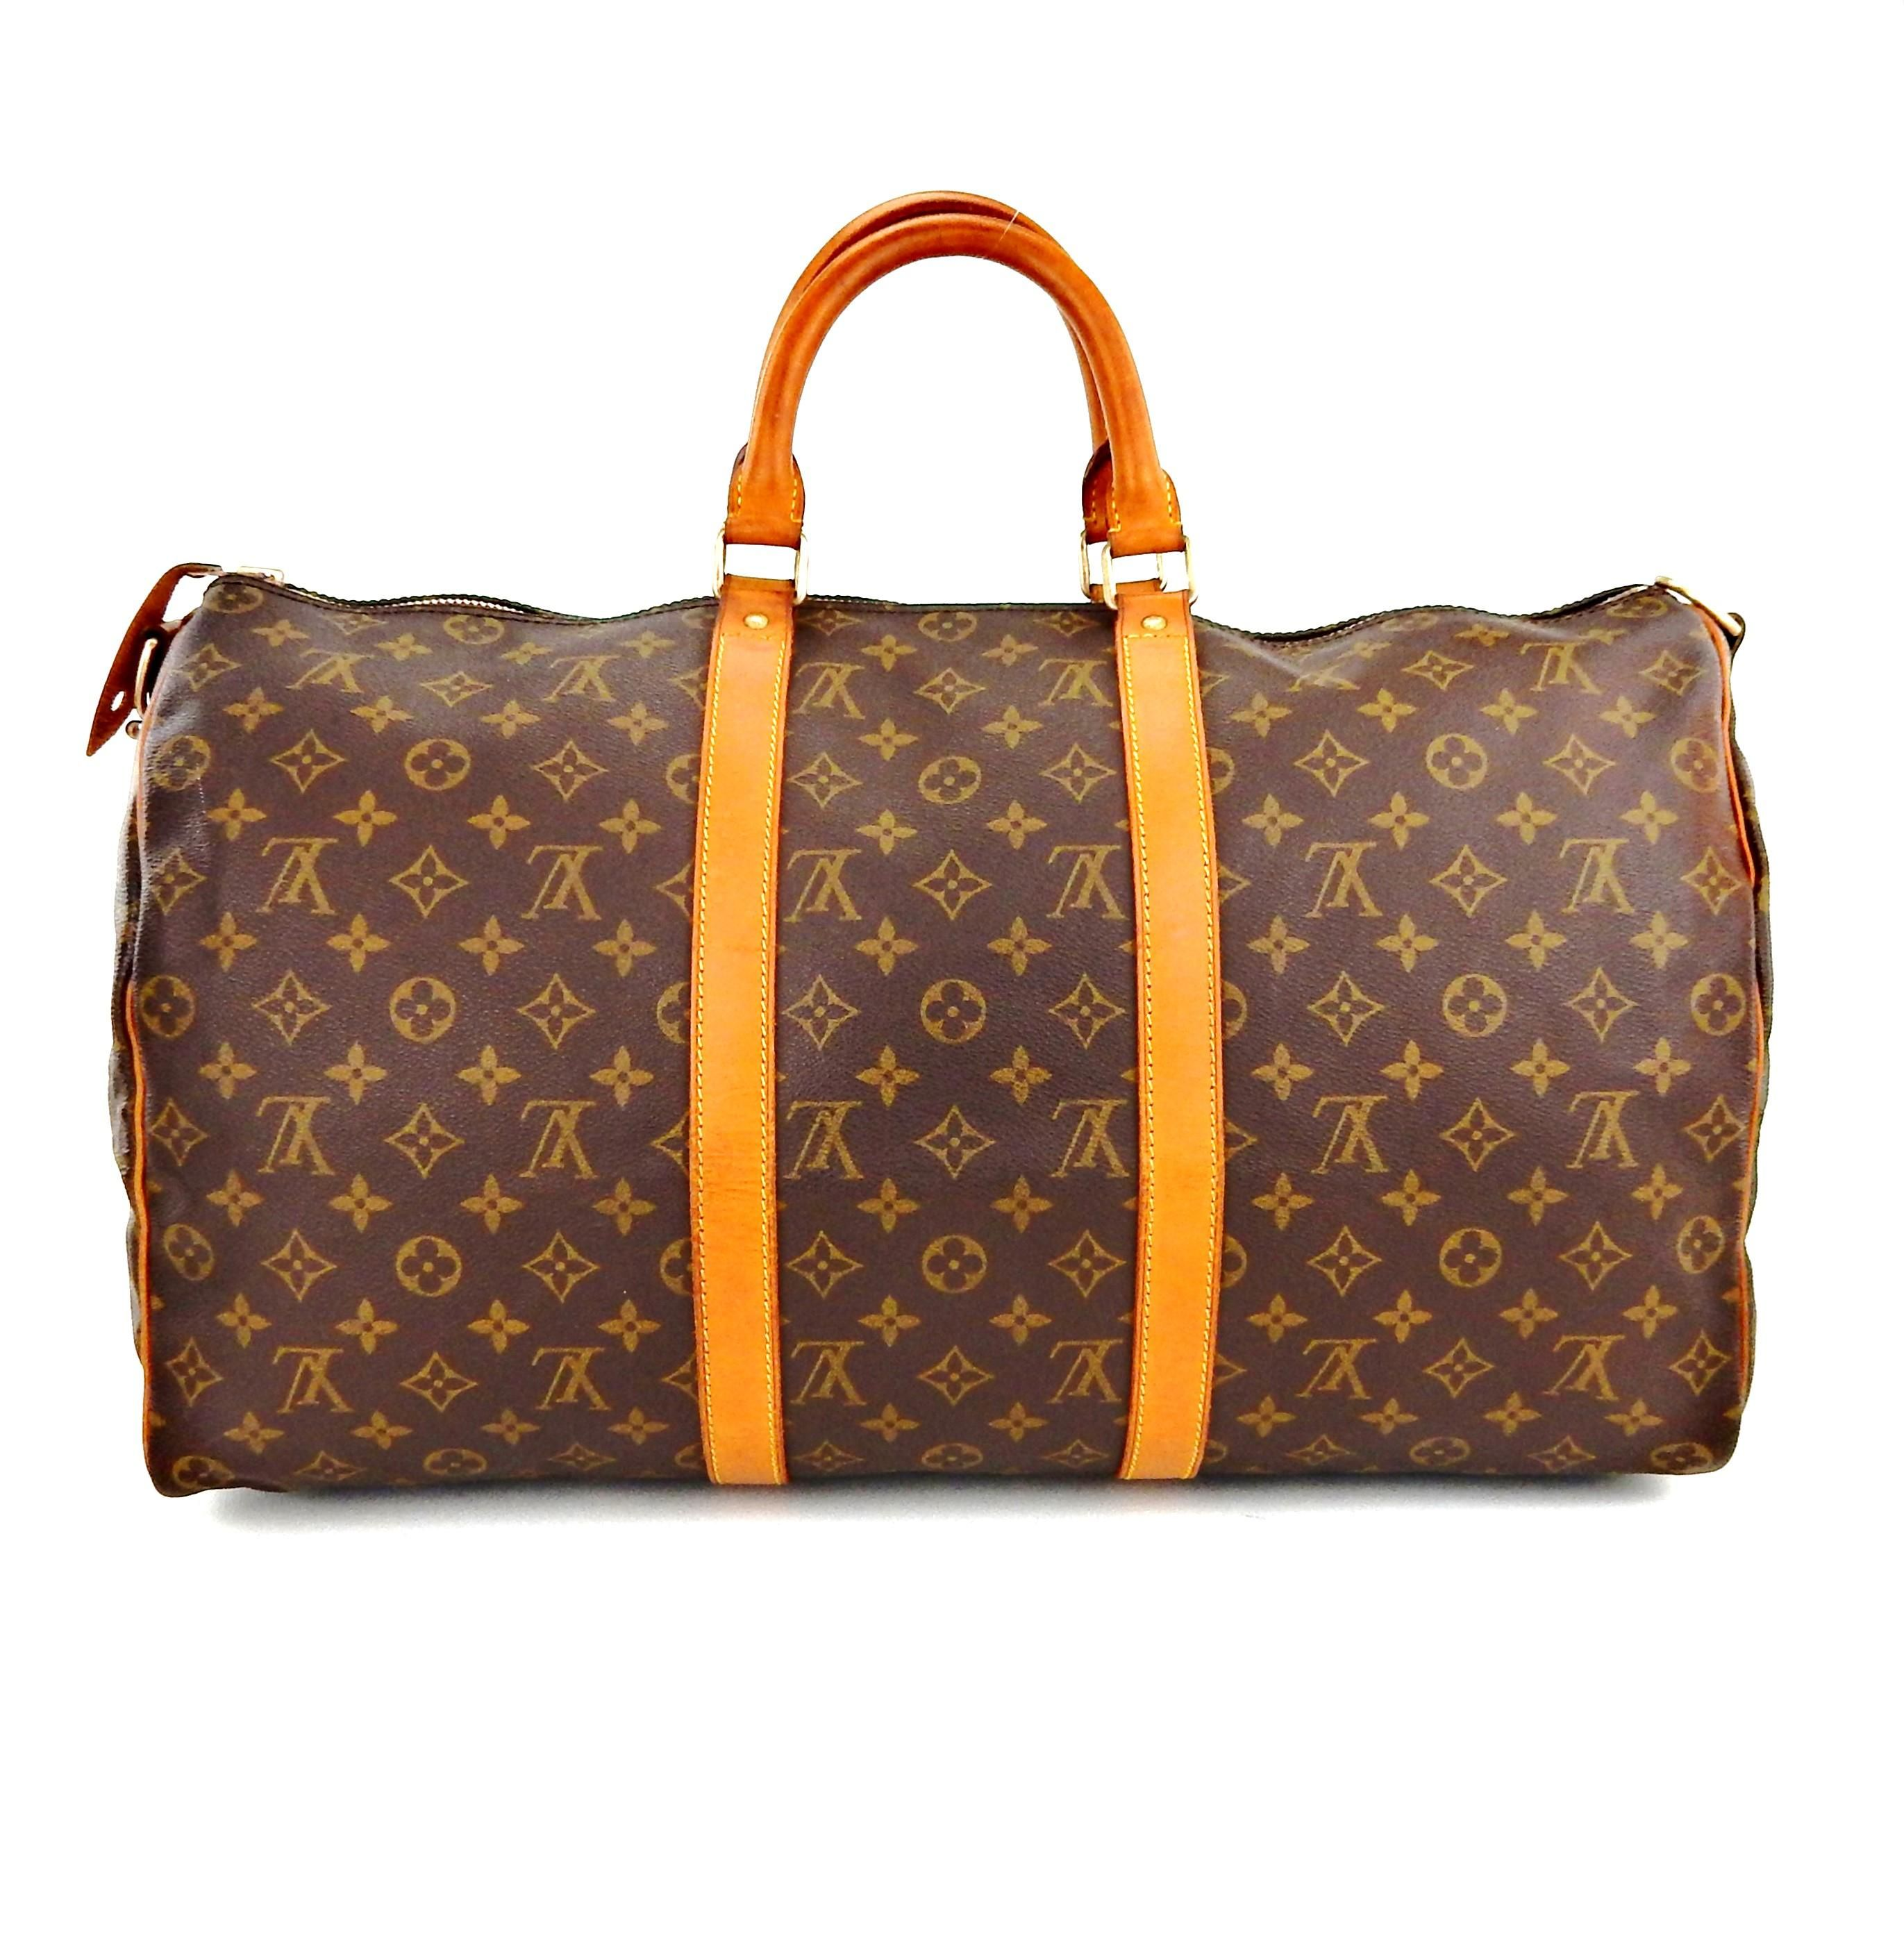 Louis Vuitton Keepall 50 Monogram Canvas Leather Boston Luggage Travel  Brown Travel Bag. Save big on the Louis Vuitton Keepall 50 Monogram Canvas  Leather ... fba8d5dbf712a